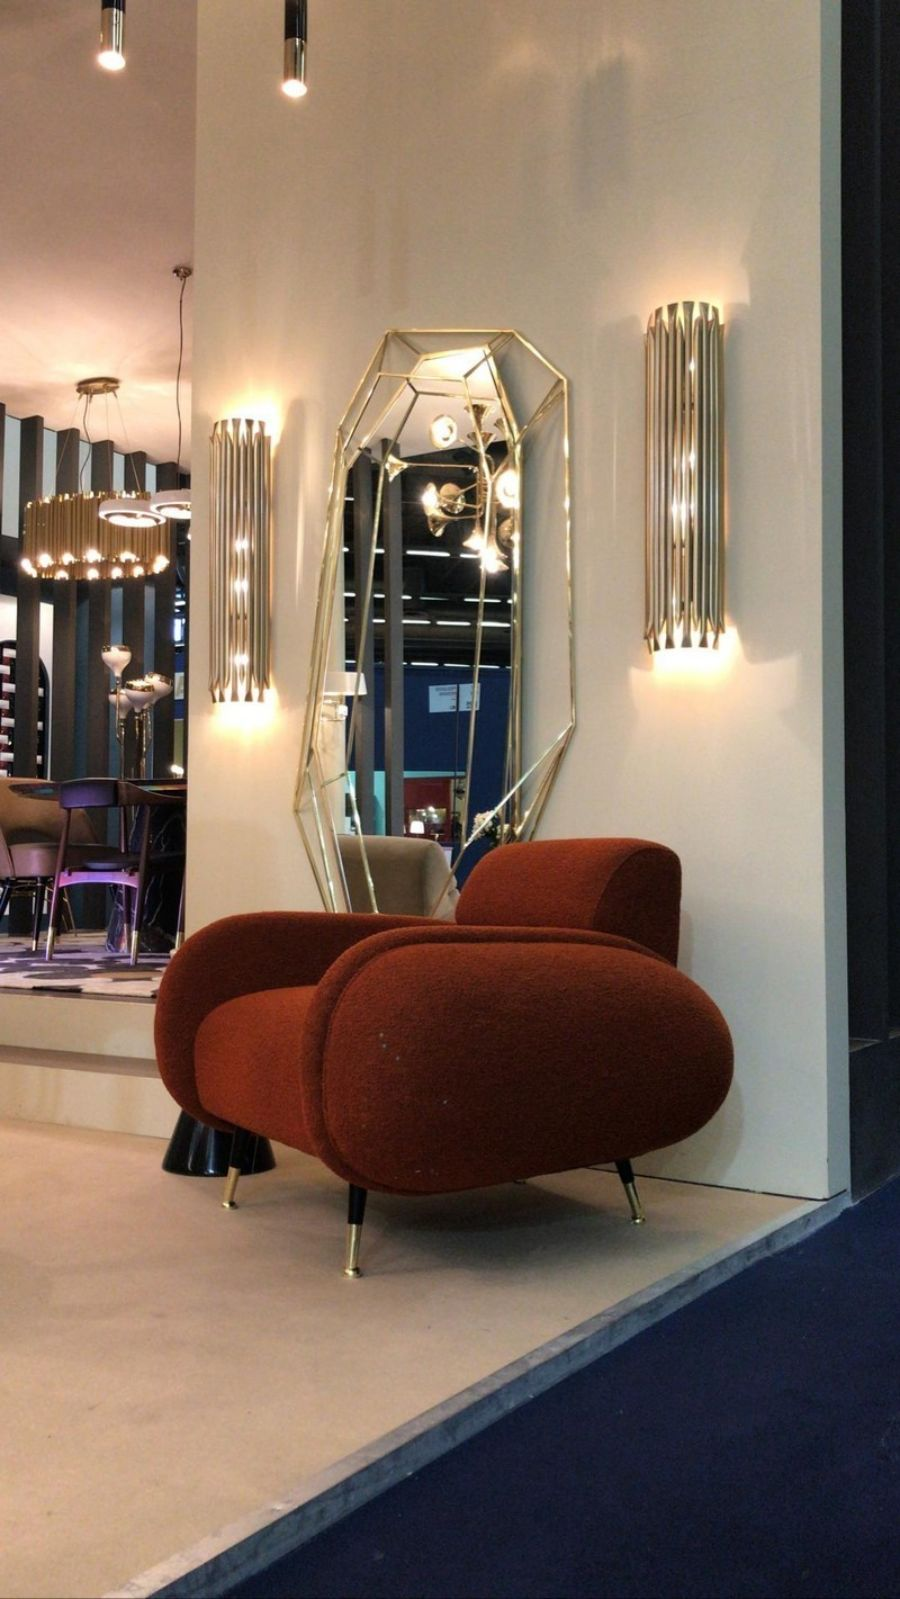 Amazing Stands at Maison et Objet That You Can't-Miss maison et objet Amazing Stands at Maison et Objet That You Can't-Miss Amazing Stands at Maison et Objet That You Cant Miss 7